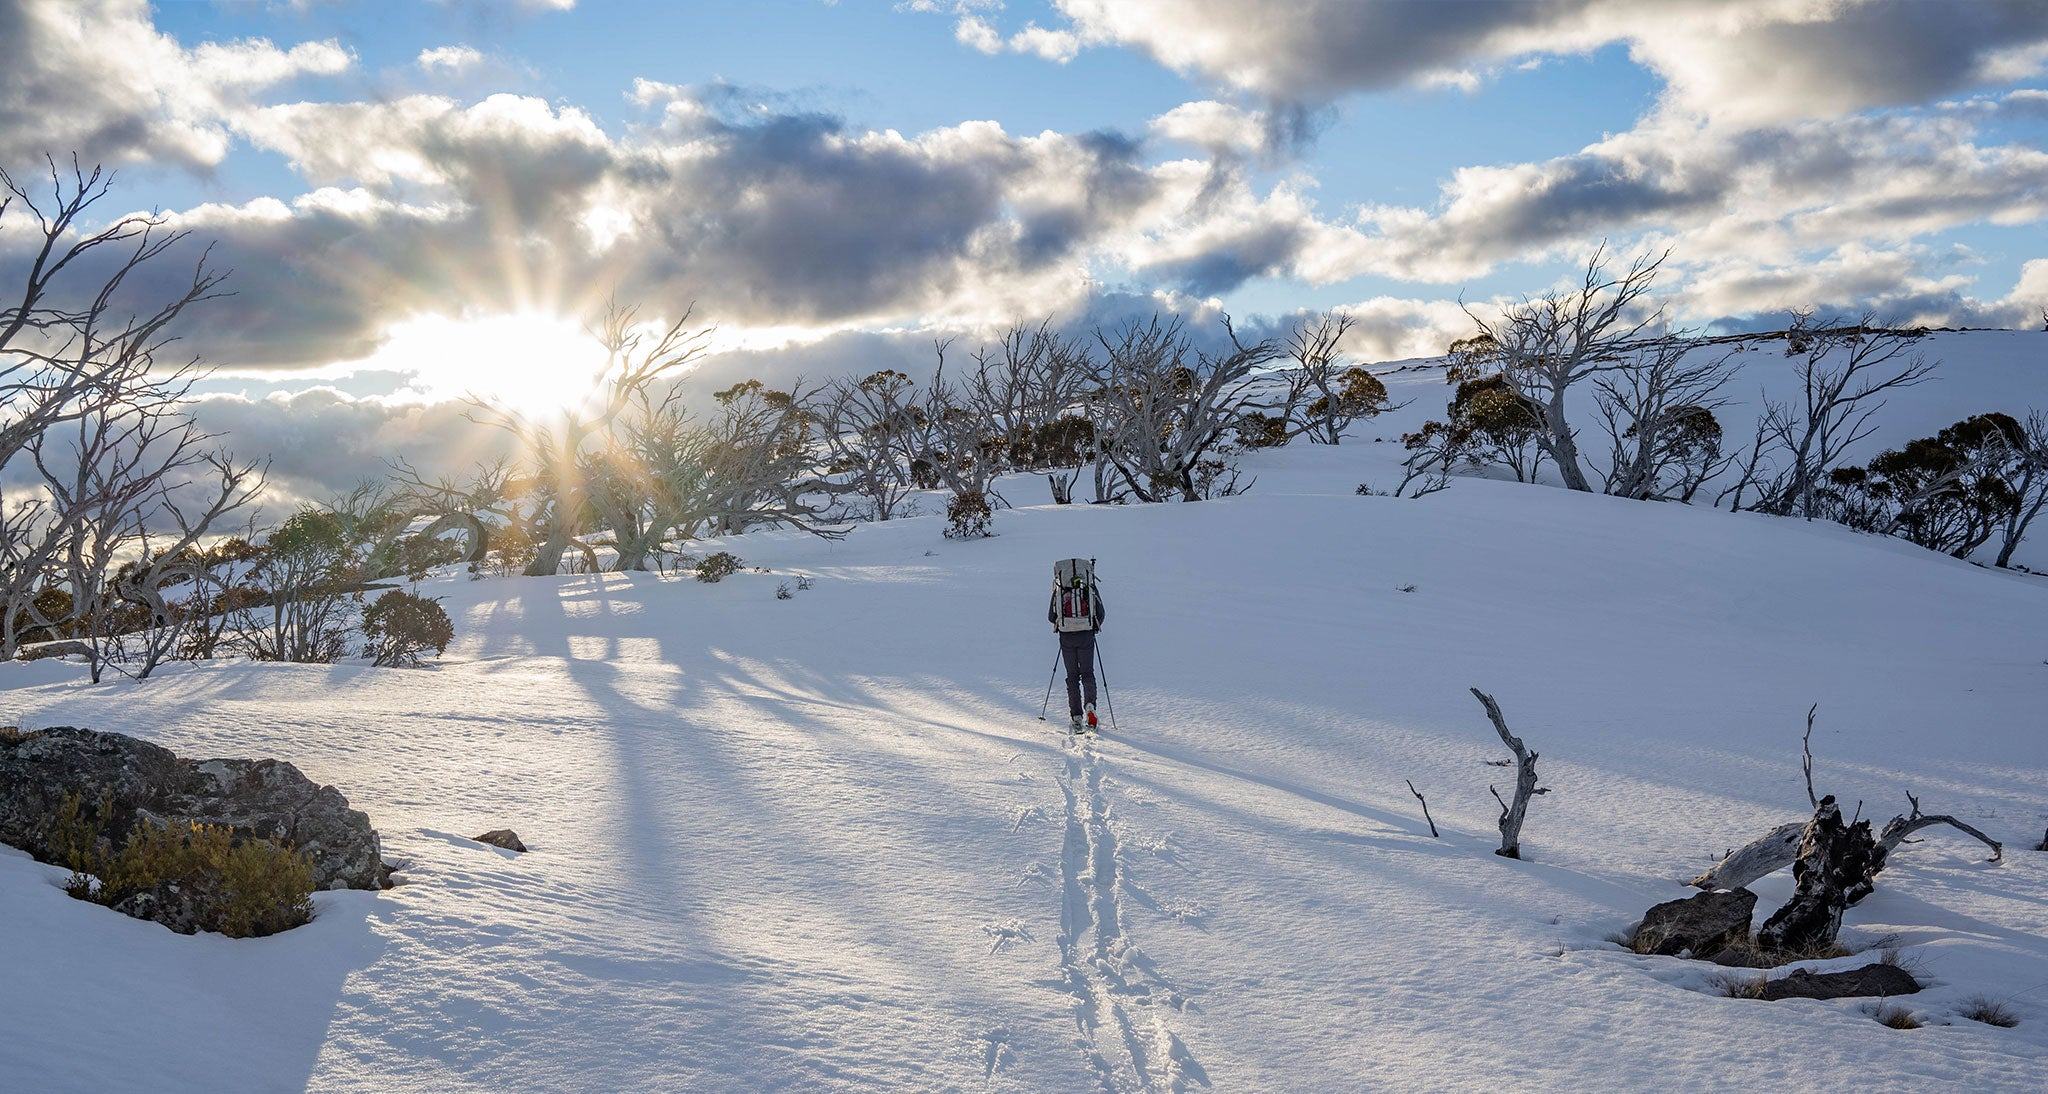 Traversing The Australian Alps Walking Track in Winter With The Oates